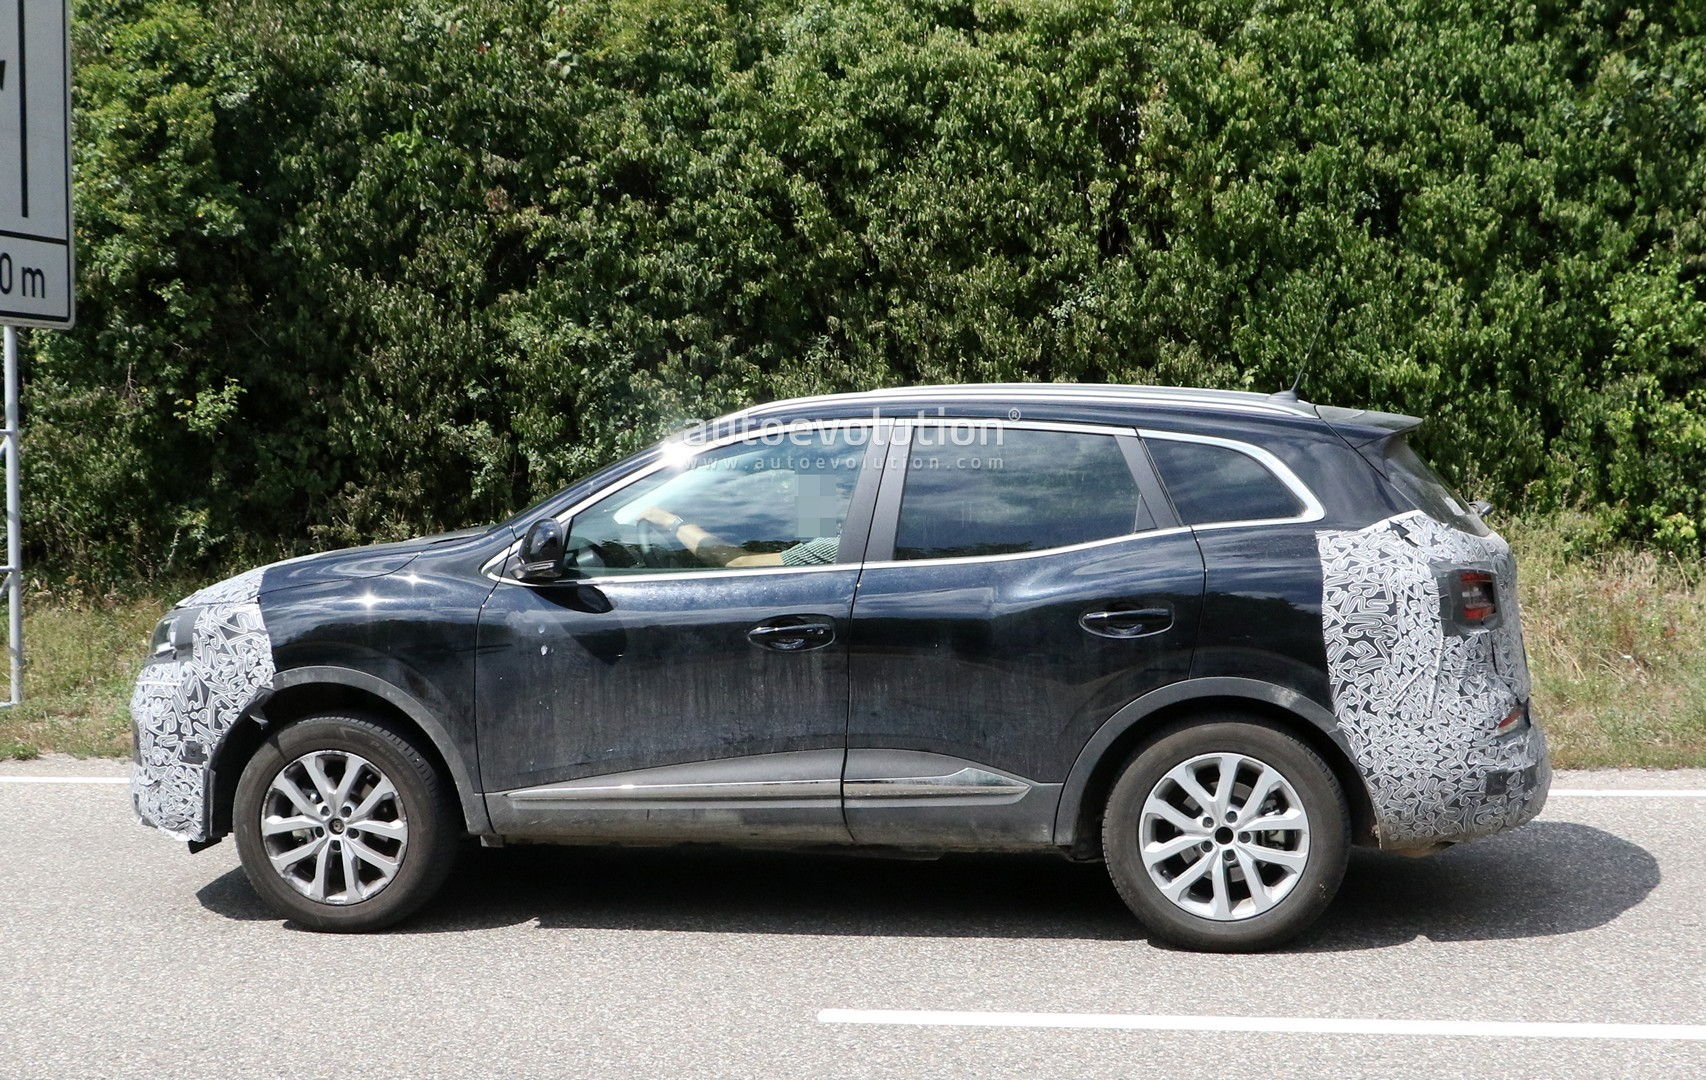 Renault Kadjar Interieur 2019 Renault Kadjar Shows Updated Interior In Latest